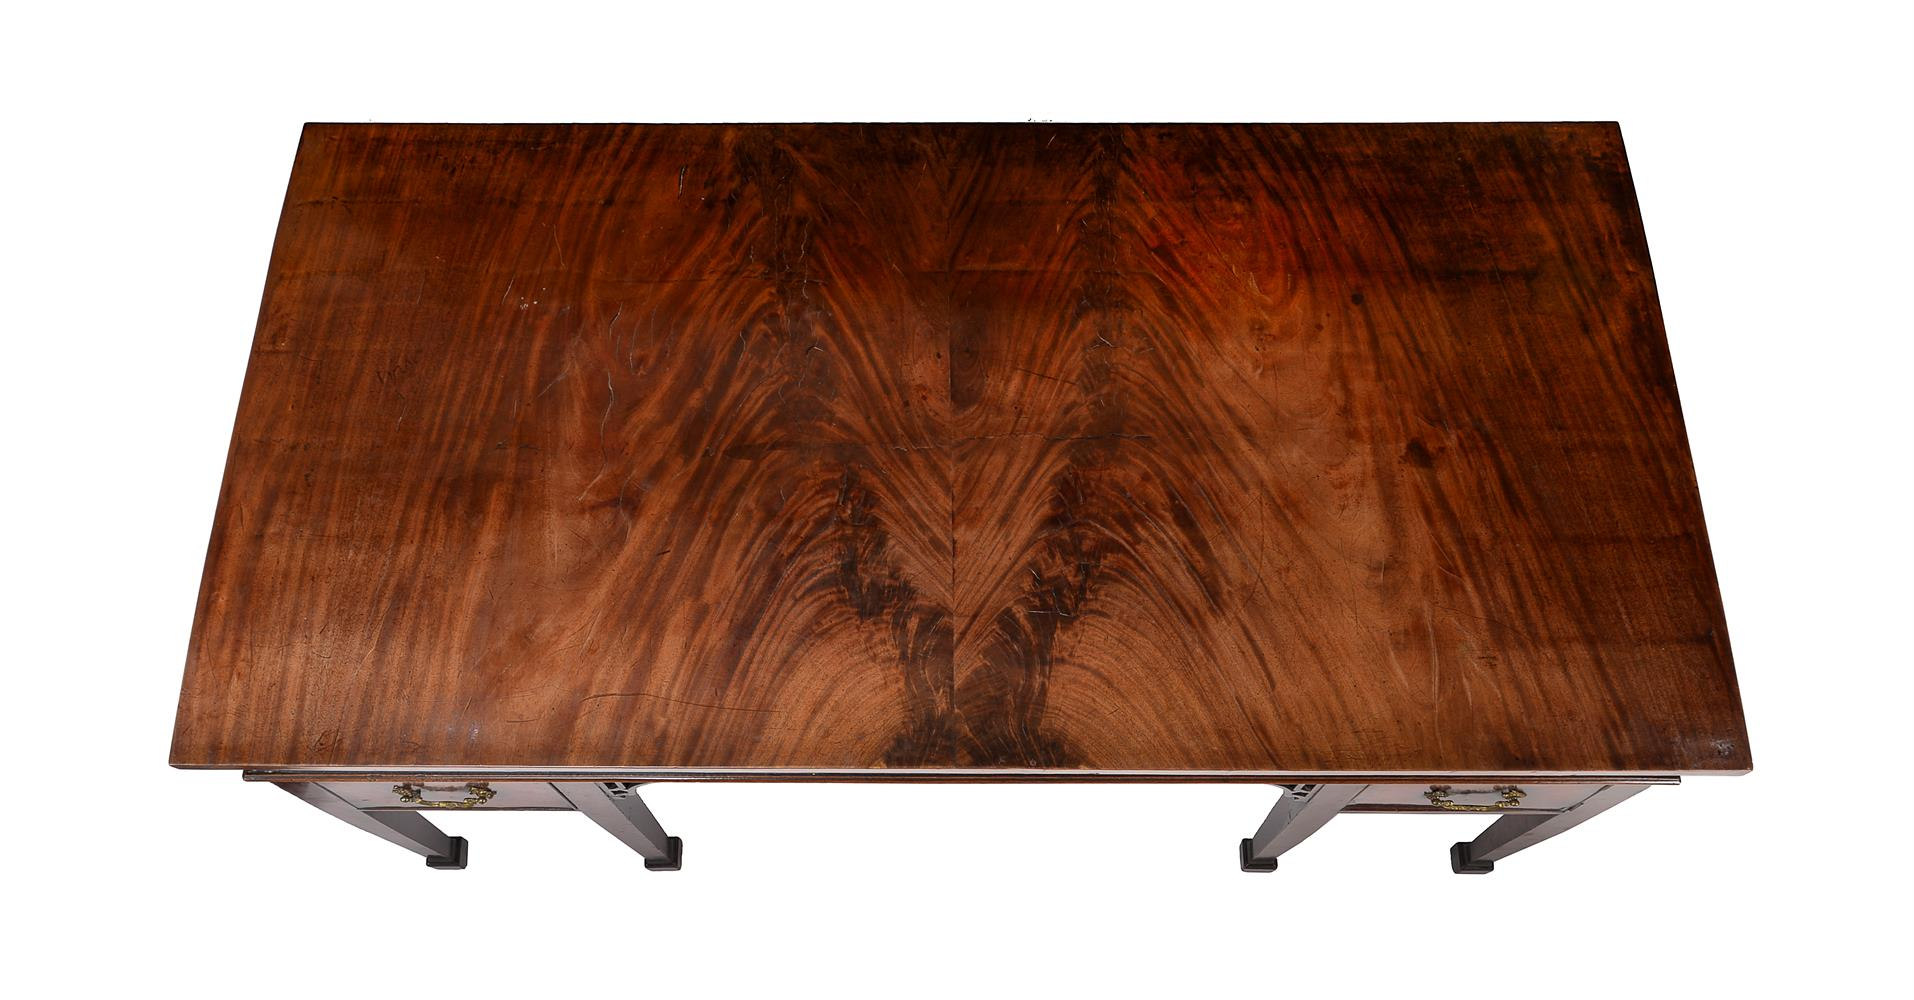 A GEORGE III MAHOGANY SERVING TABLE, CIRCA 1790 - Image 6 of 6